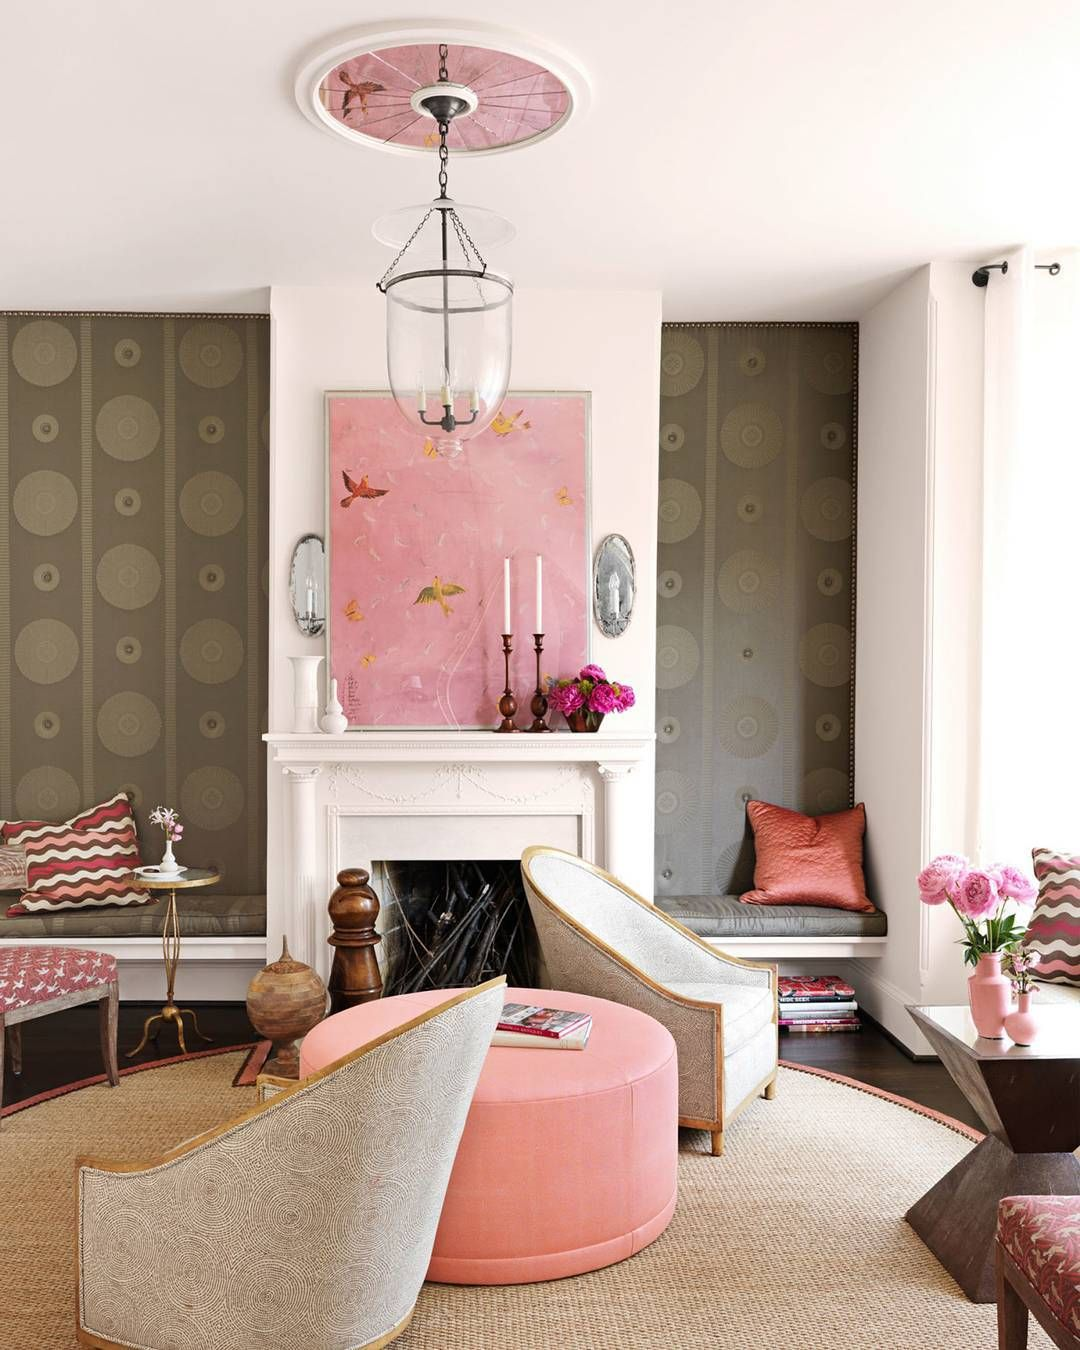 Pin by Glitter Guide on INTERIOR INSPIRATION | Pinterest | House ...